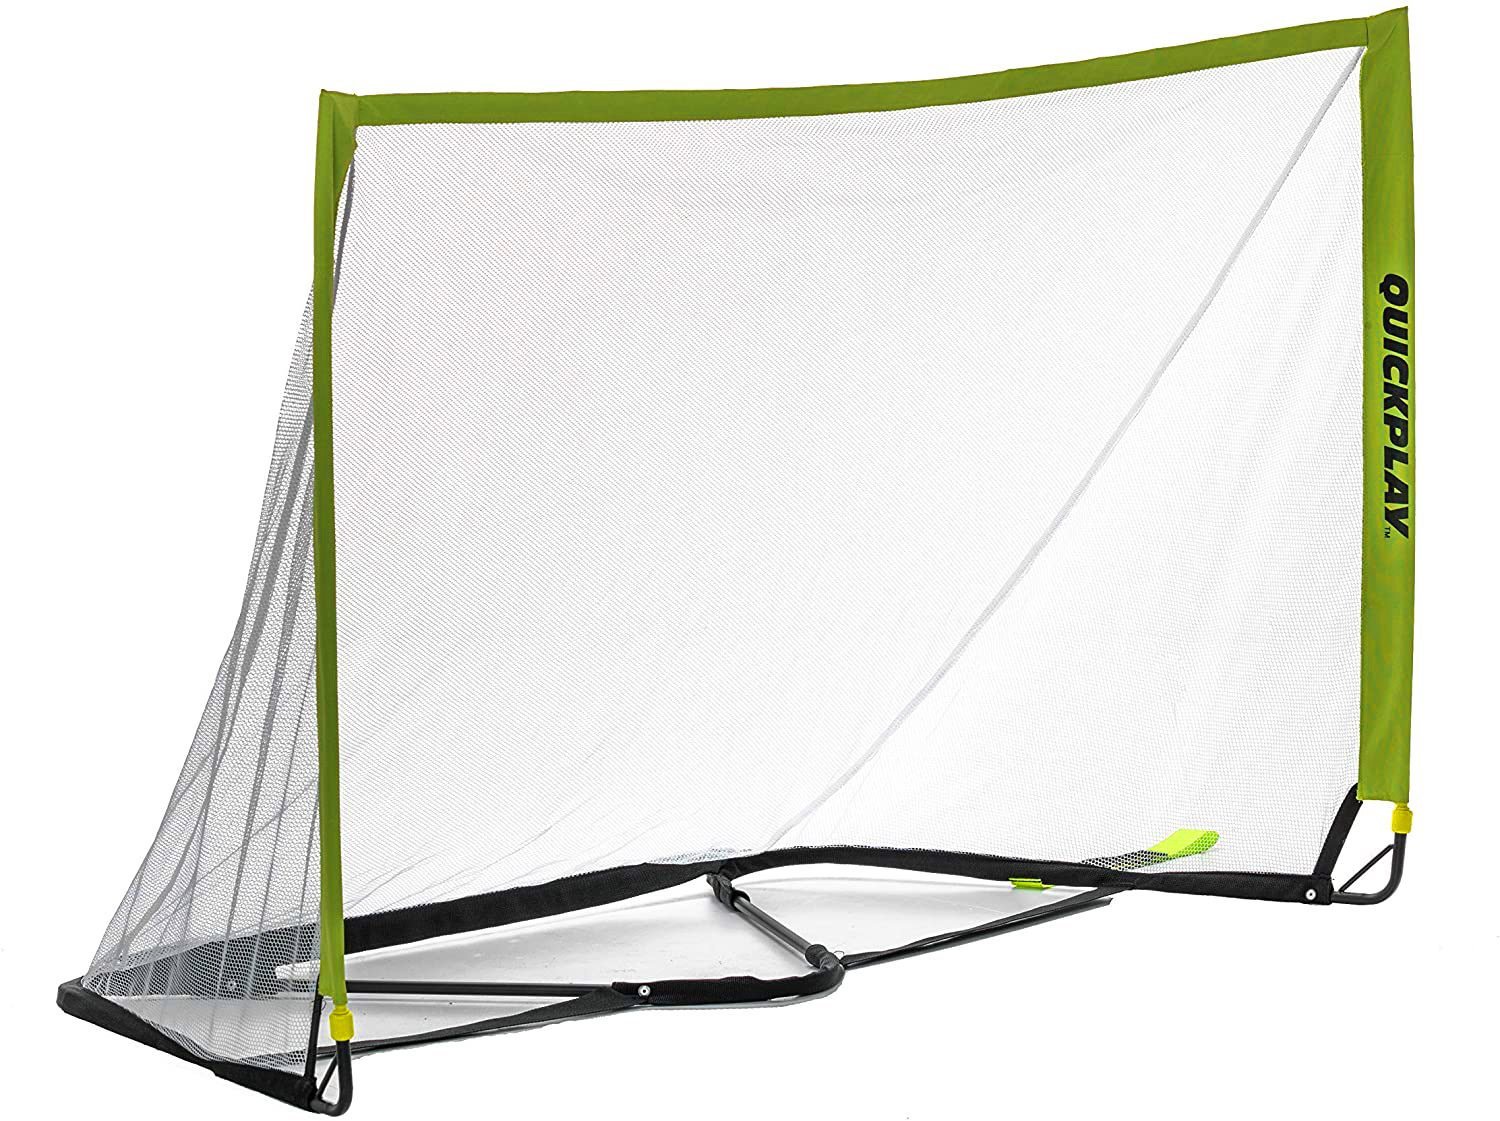 Kickster Quickplay Pop Up 4 x 2ft Football Goal